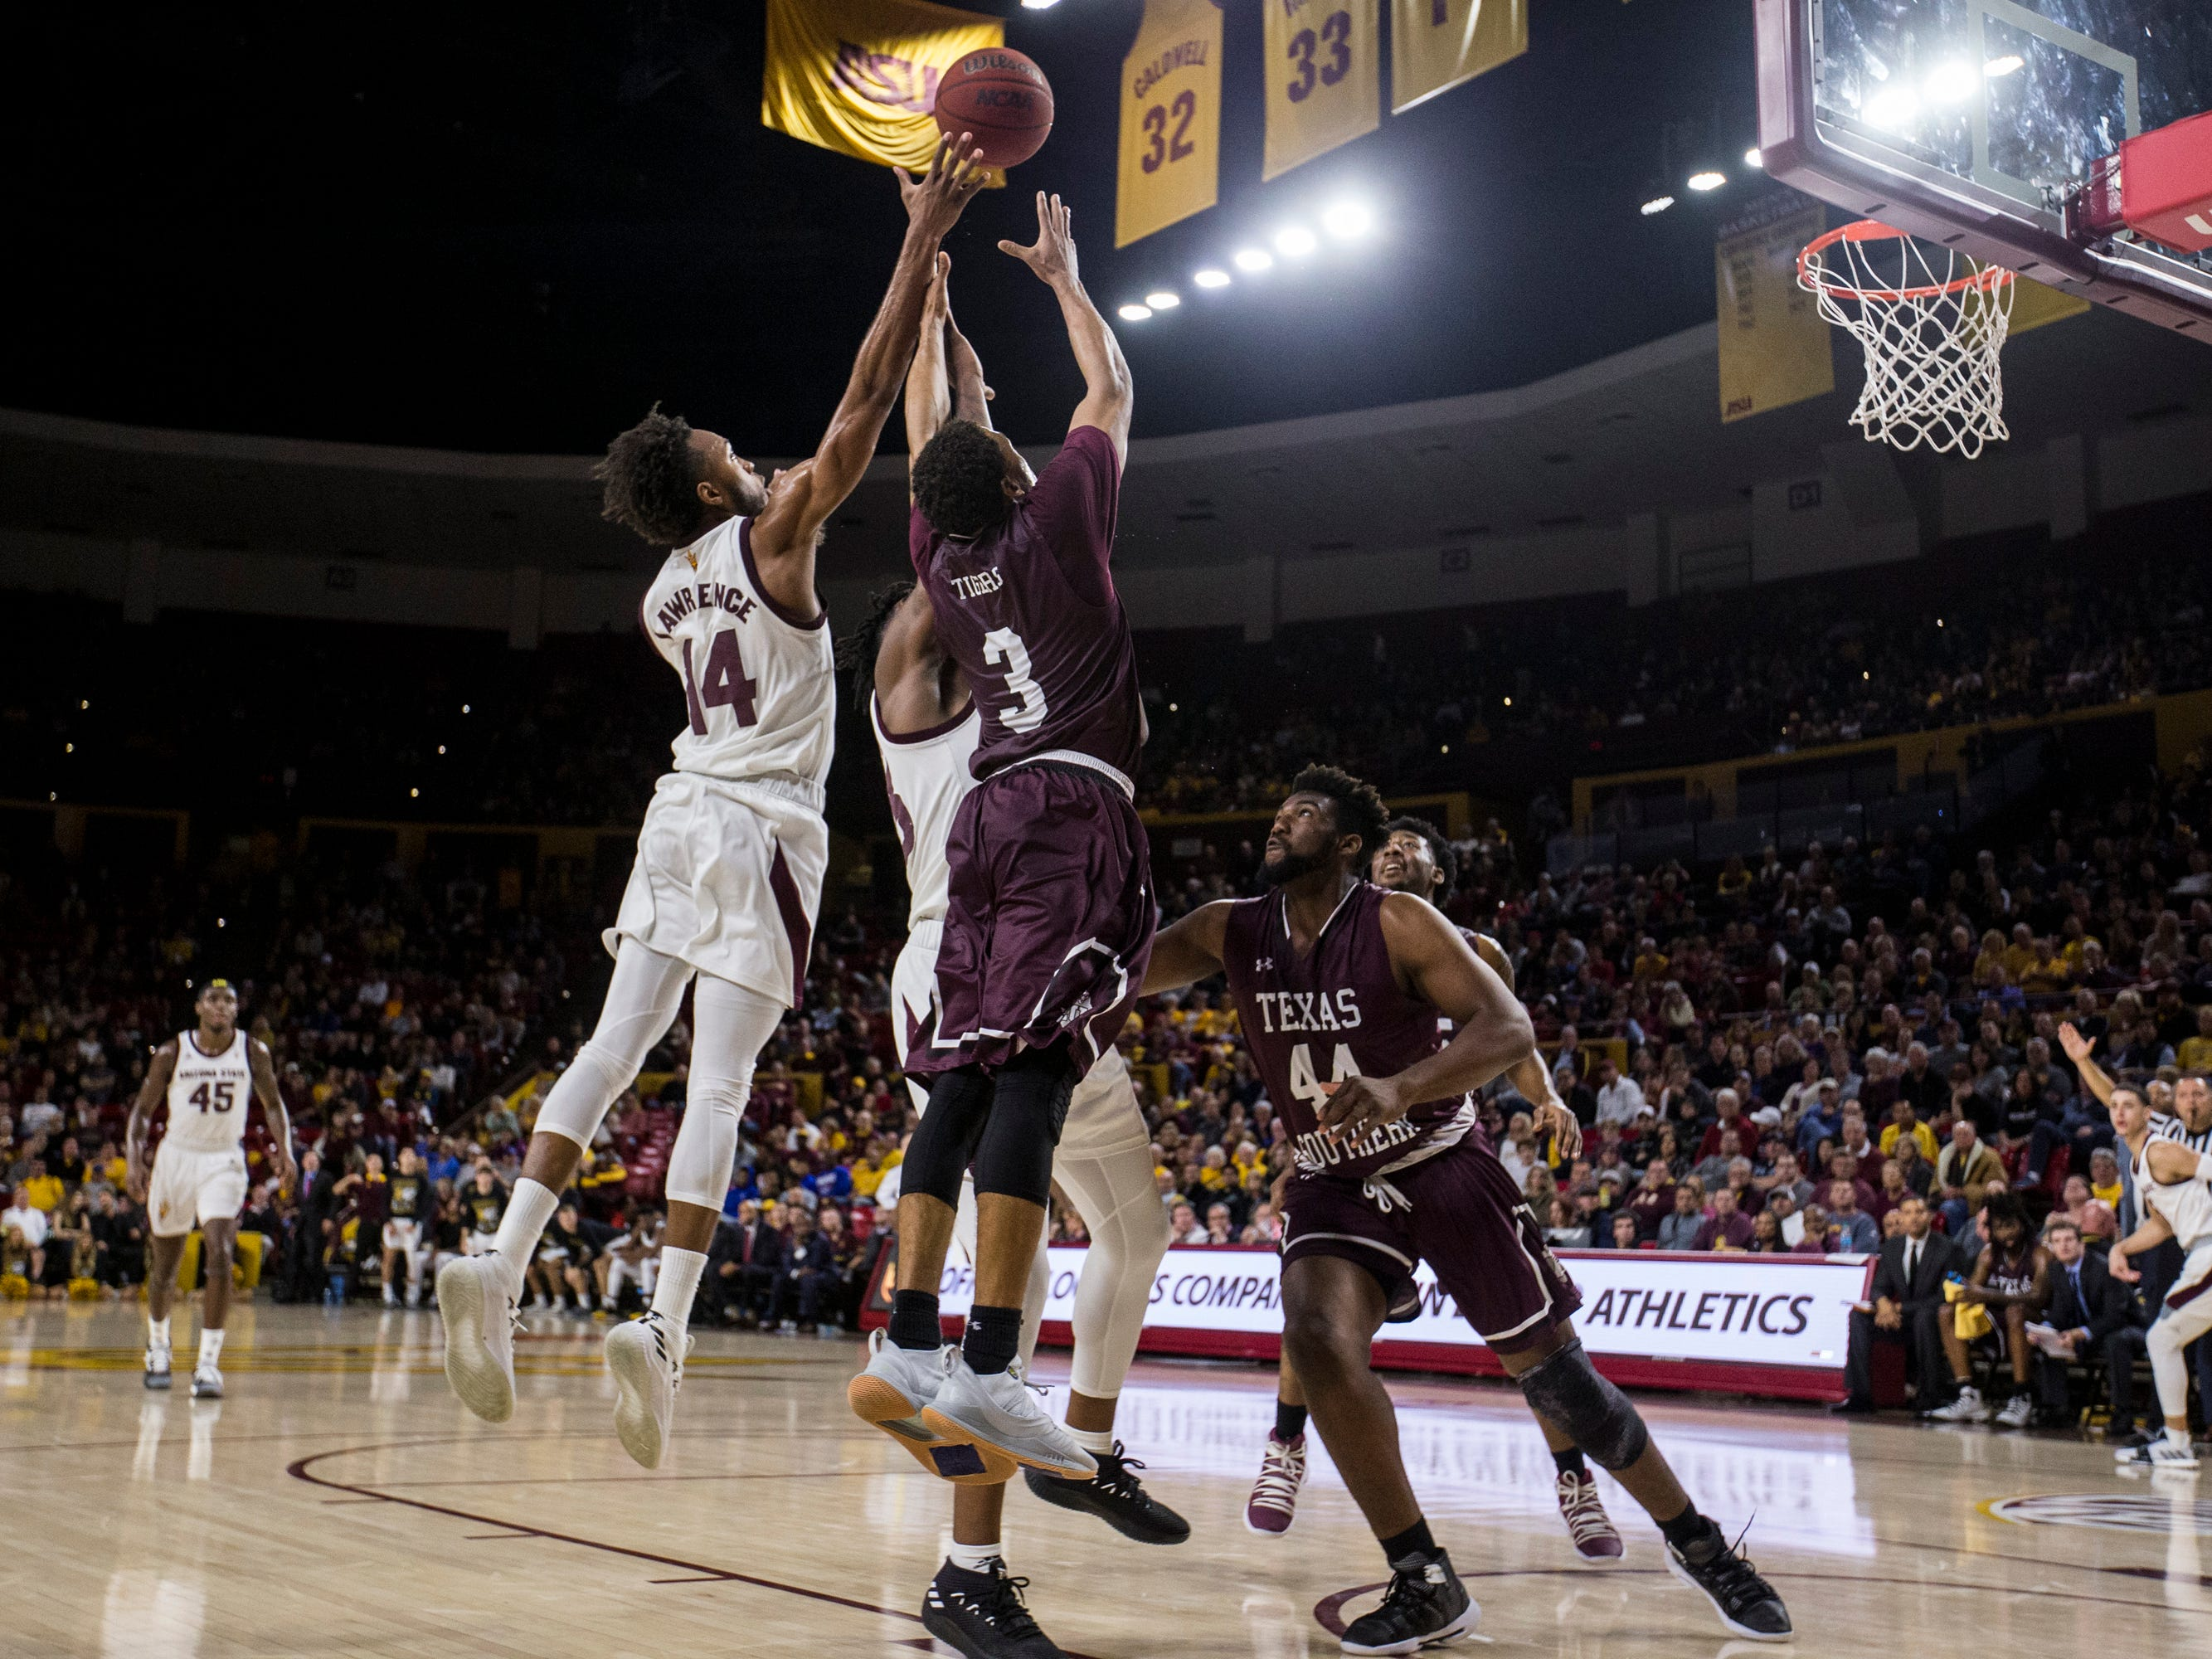 Arizona State's Kimani Lawrence goes up for a rebound against Texas Southern in the first half on Saturday, Dec. 1, 2018, at Wells Fargo Arena in Tempe, Ariz.